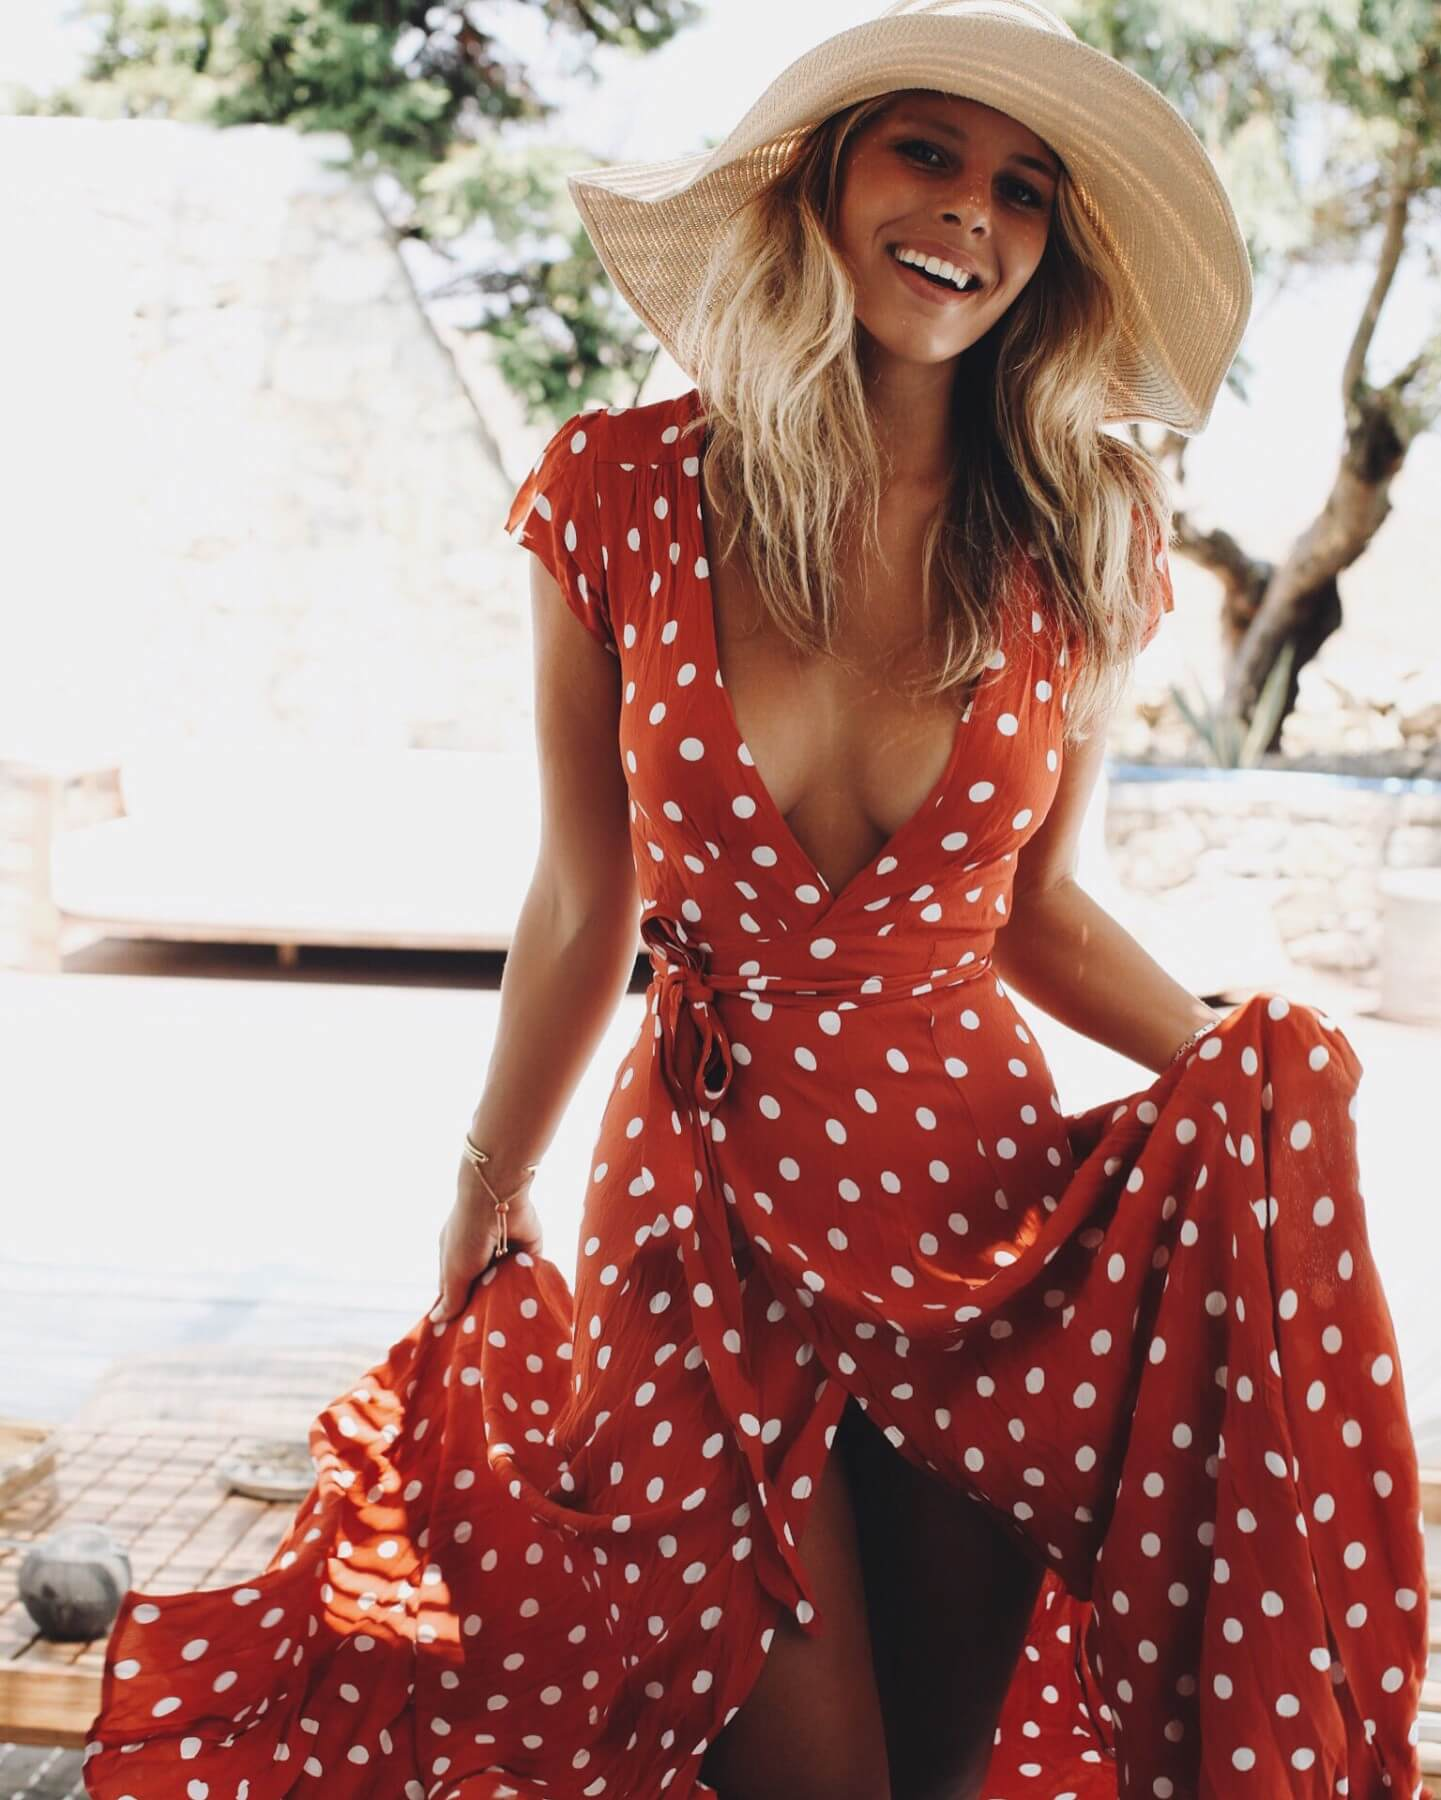 Did you know that polka dots made a huge comeback this year? Wear them in this red variant! #summerstyle #summerfashion